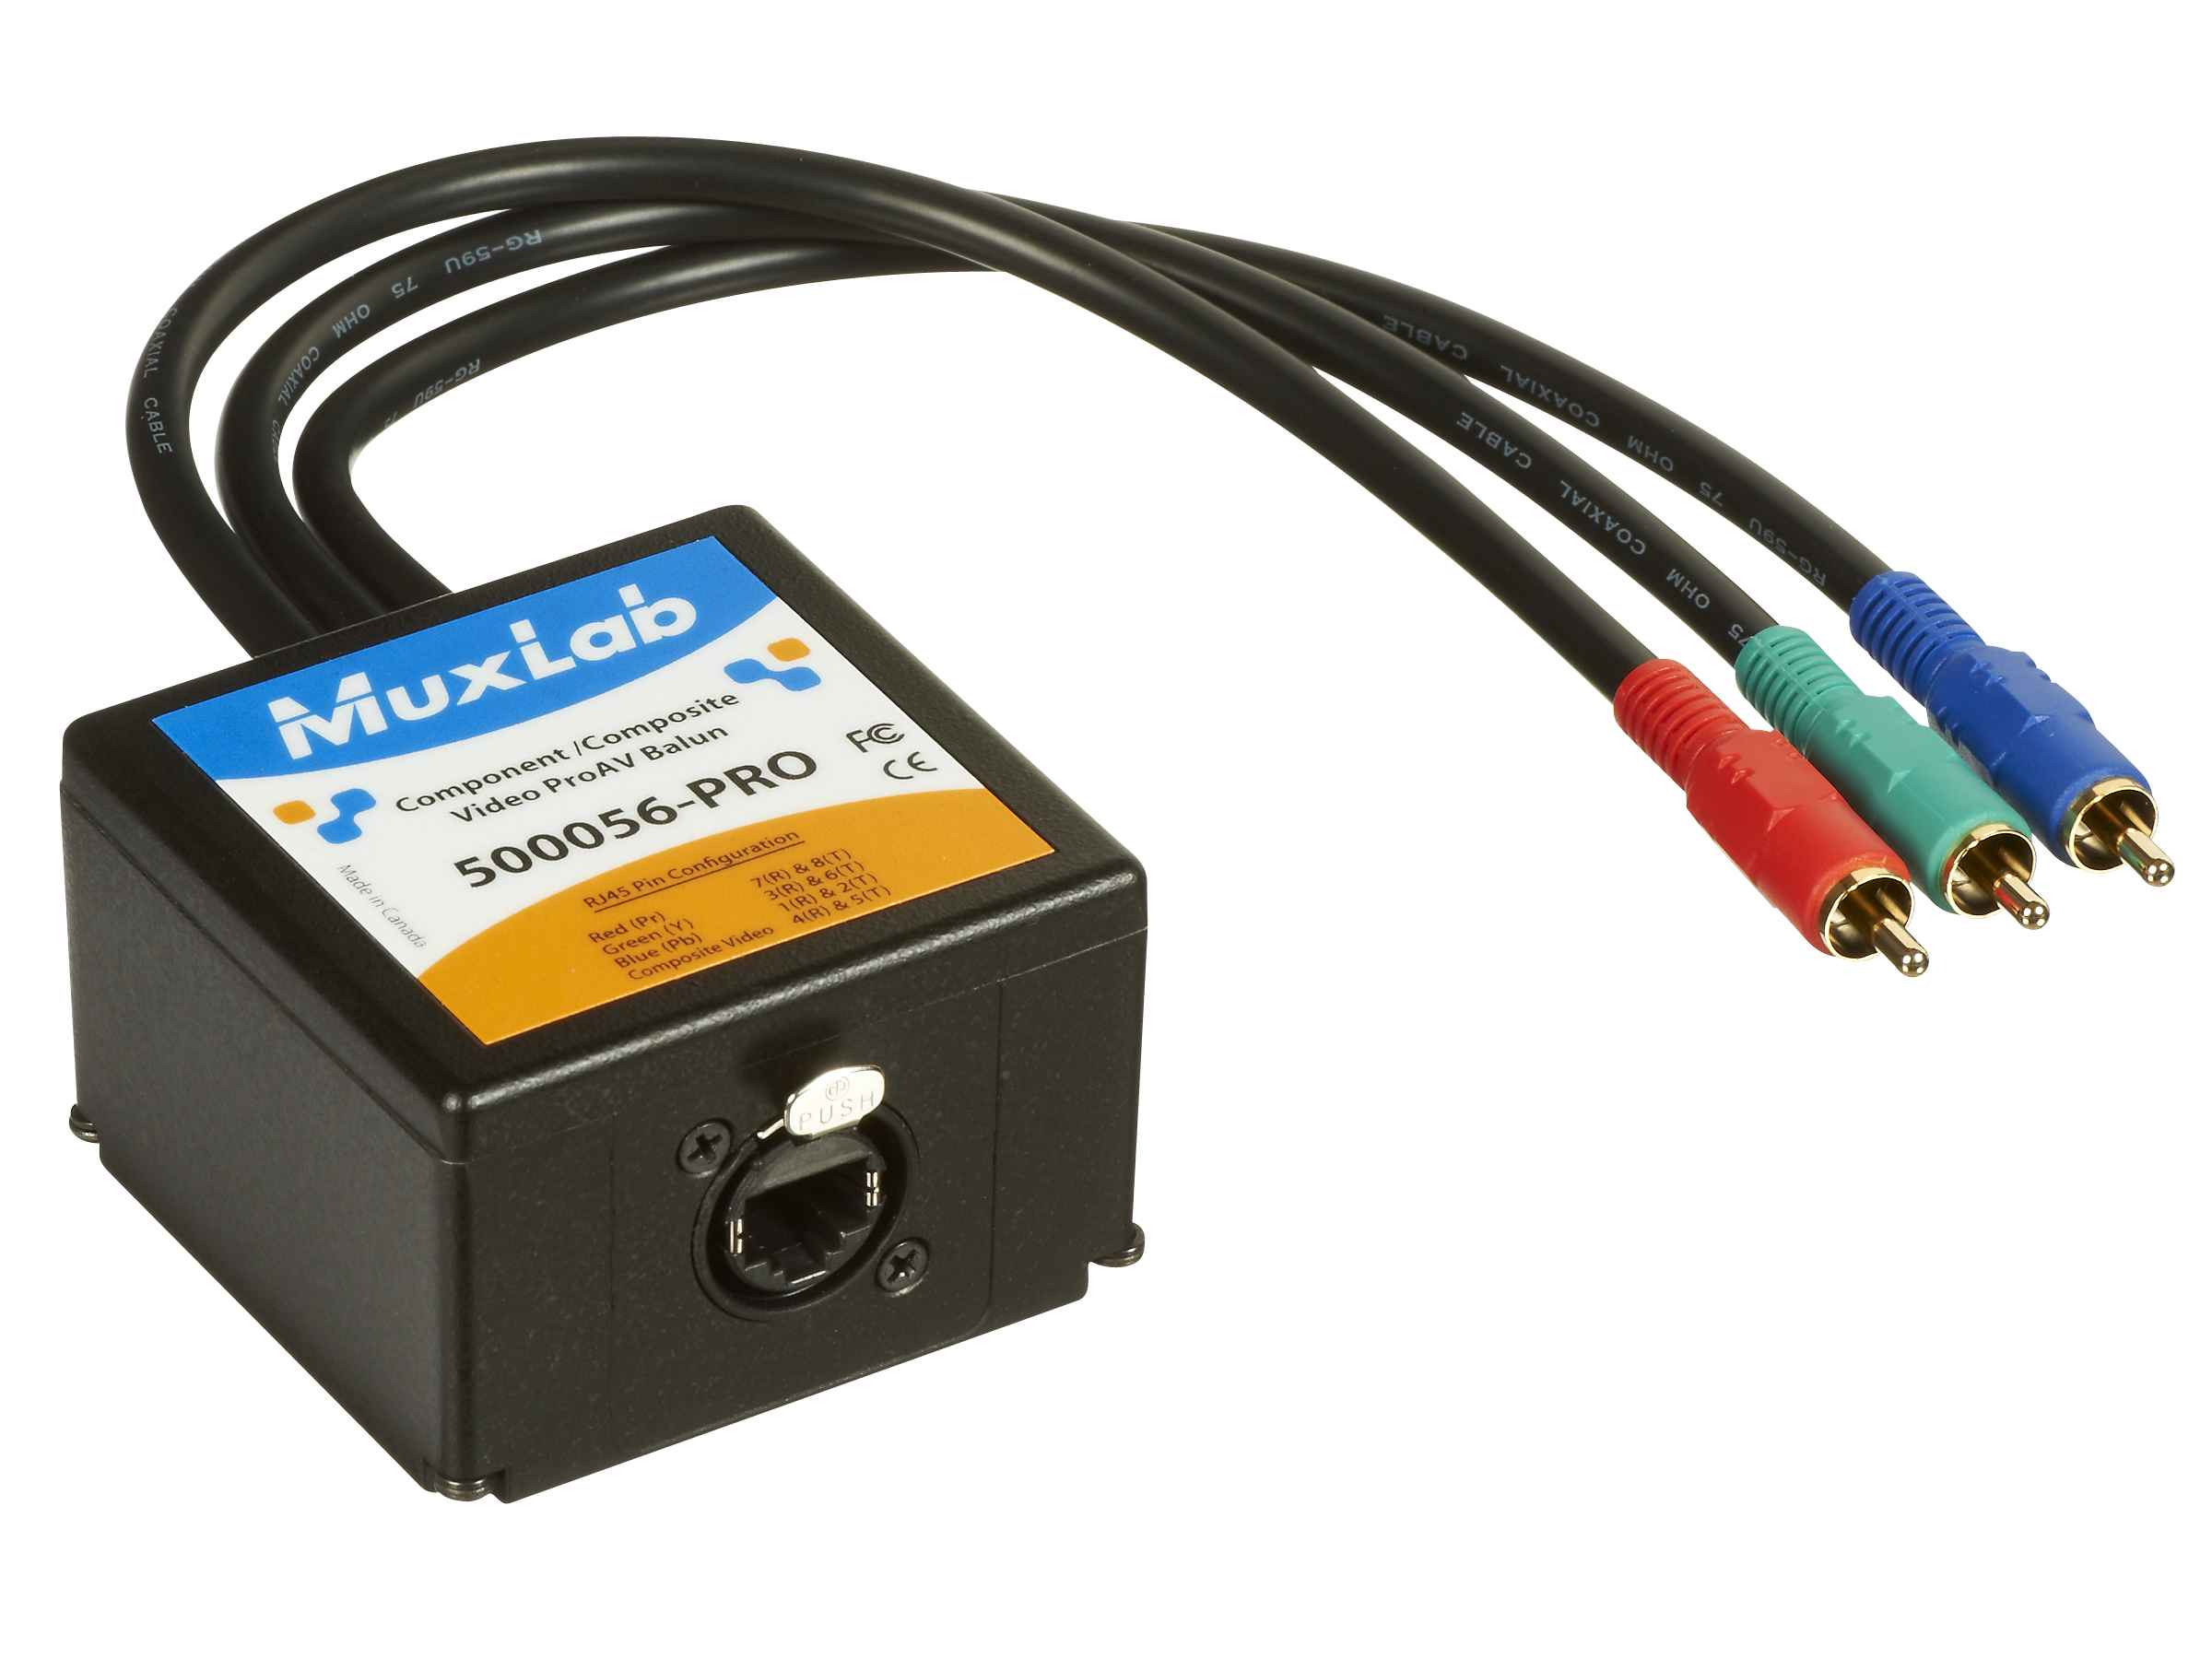 500056 Pro Muxlabs Component Video Or Composite Balun Free Circuit Diagrams 4u Ac120v Led Series